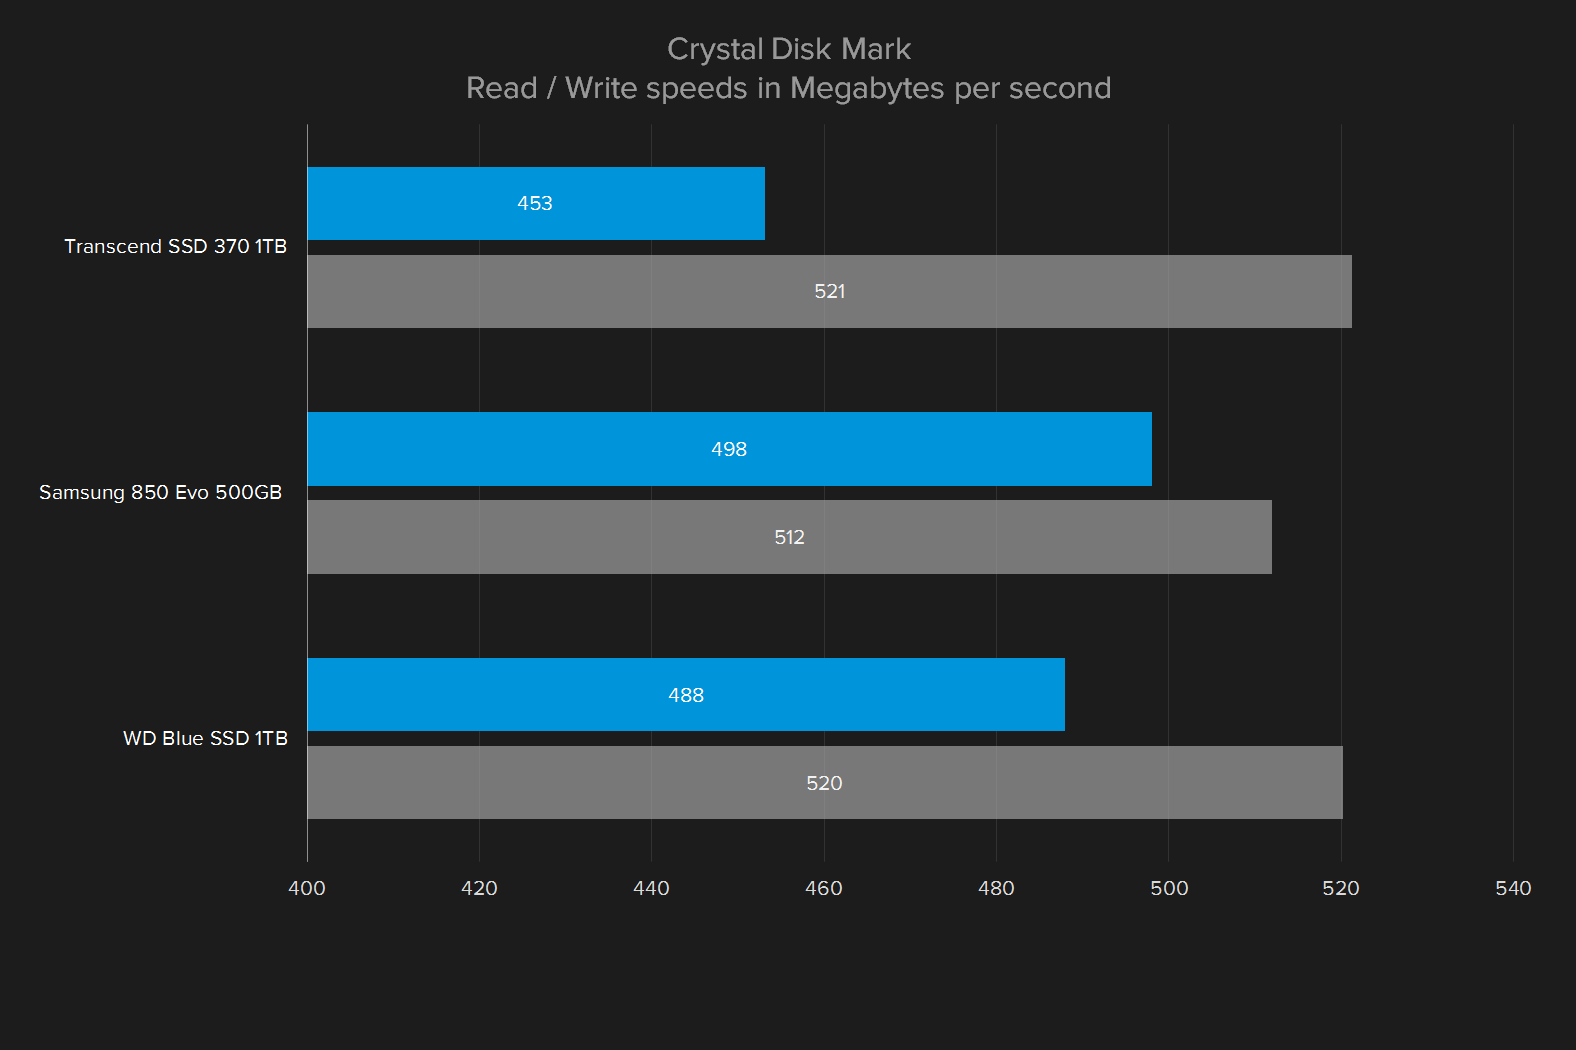 wd blue 1tb ssd review crystal disk mark